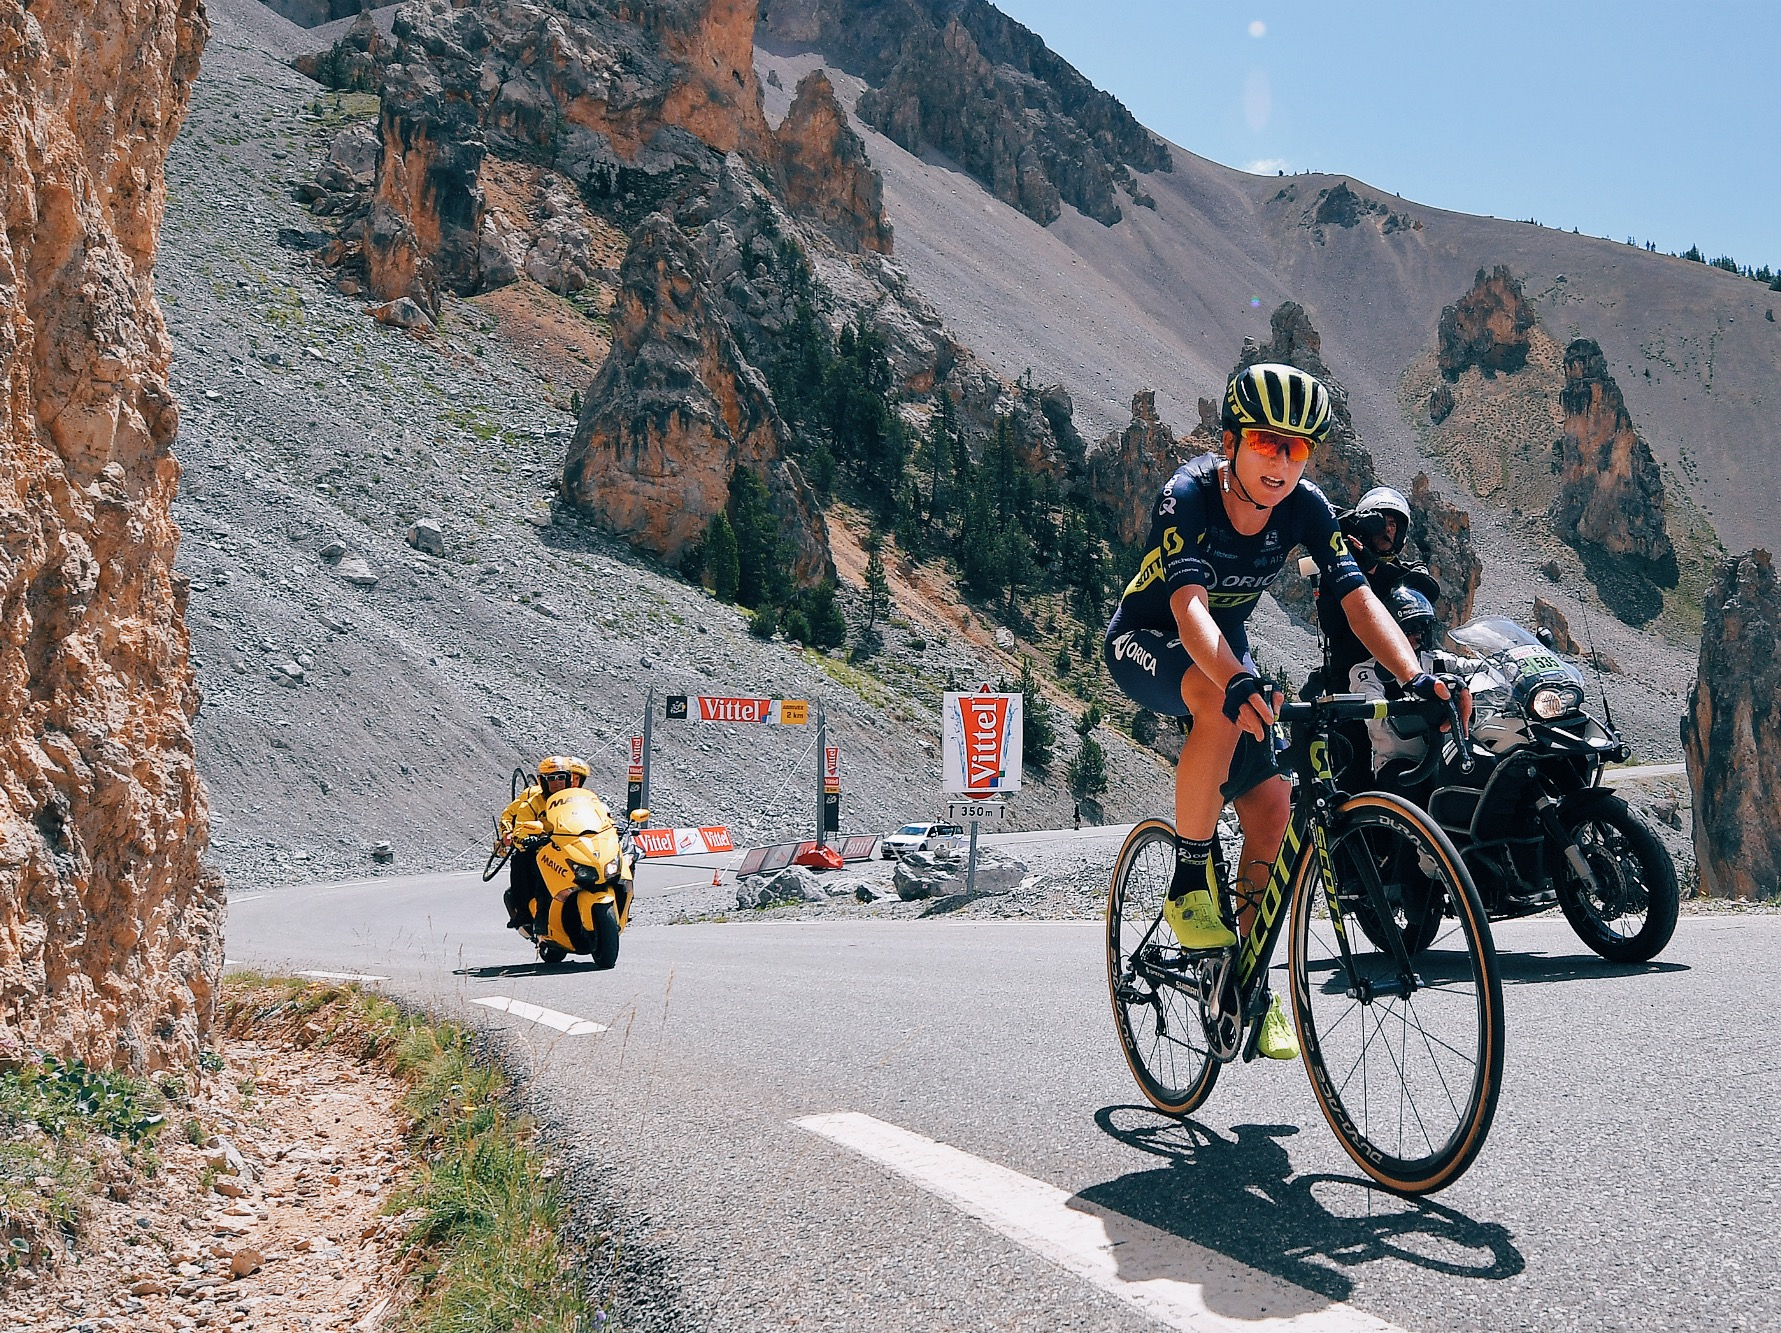 Annemiek van Vleuten battling the Col d'Izoard in 2017's race